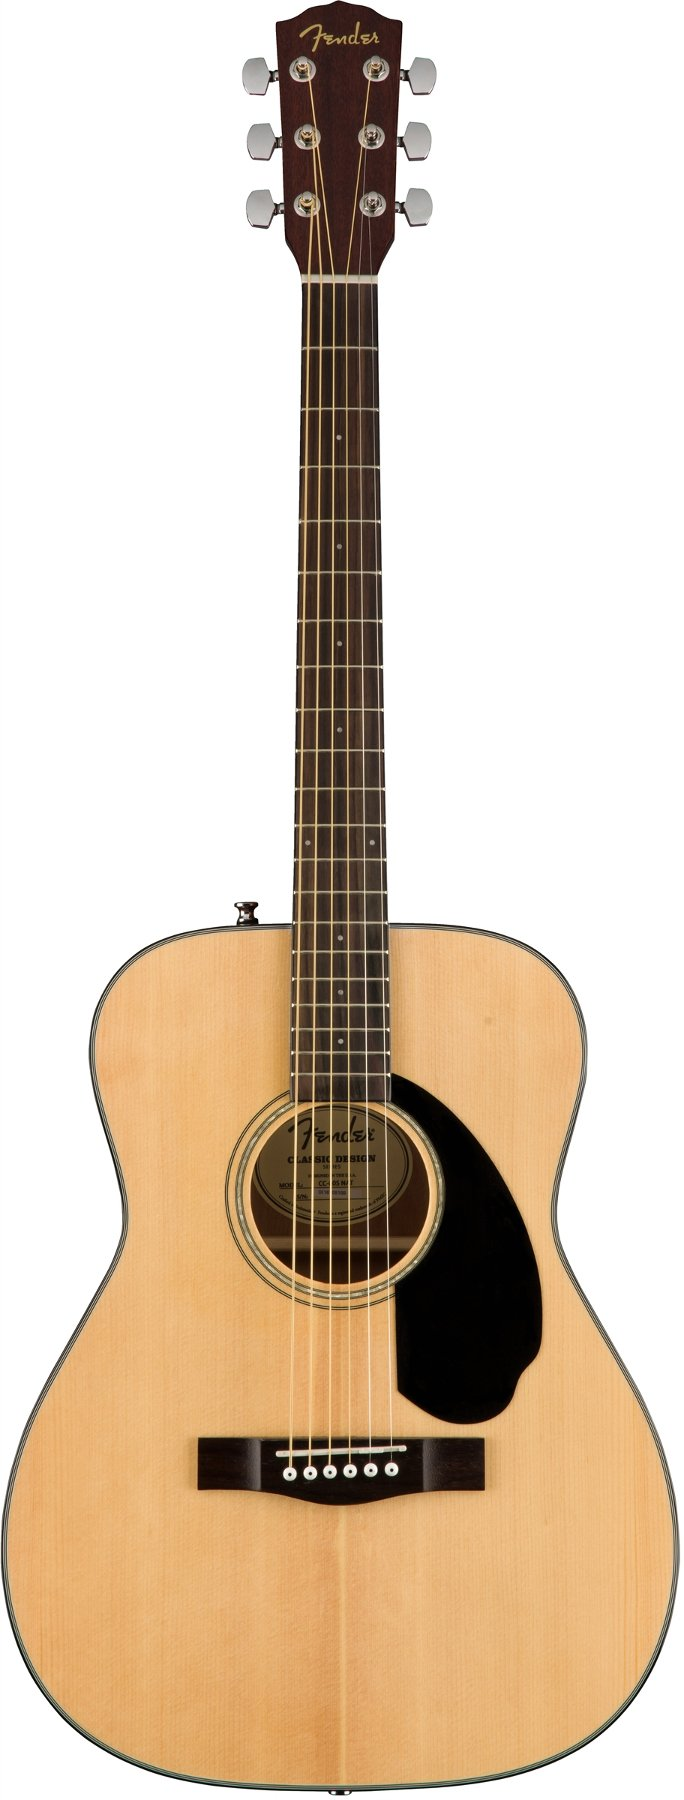 Concert Acoustic Guitar with Mahogany Back and Sides, Rosewood Fingerboard